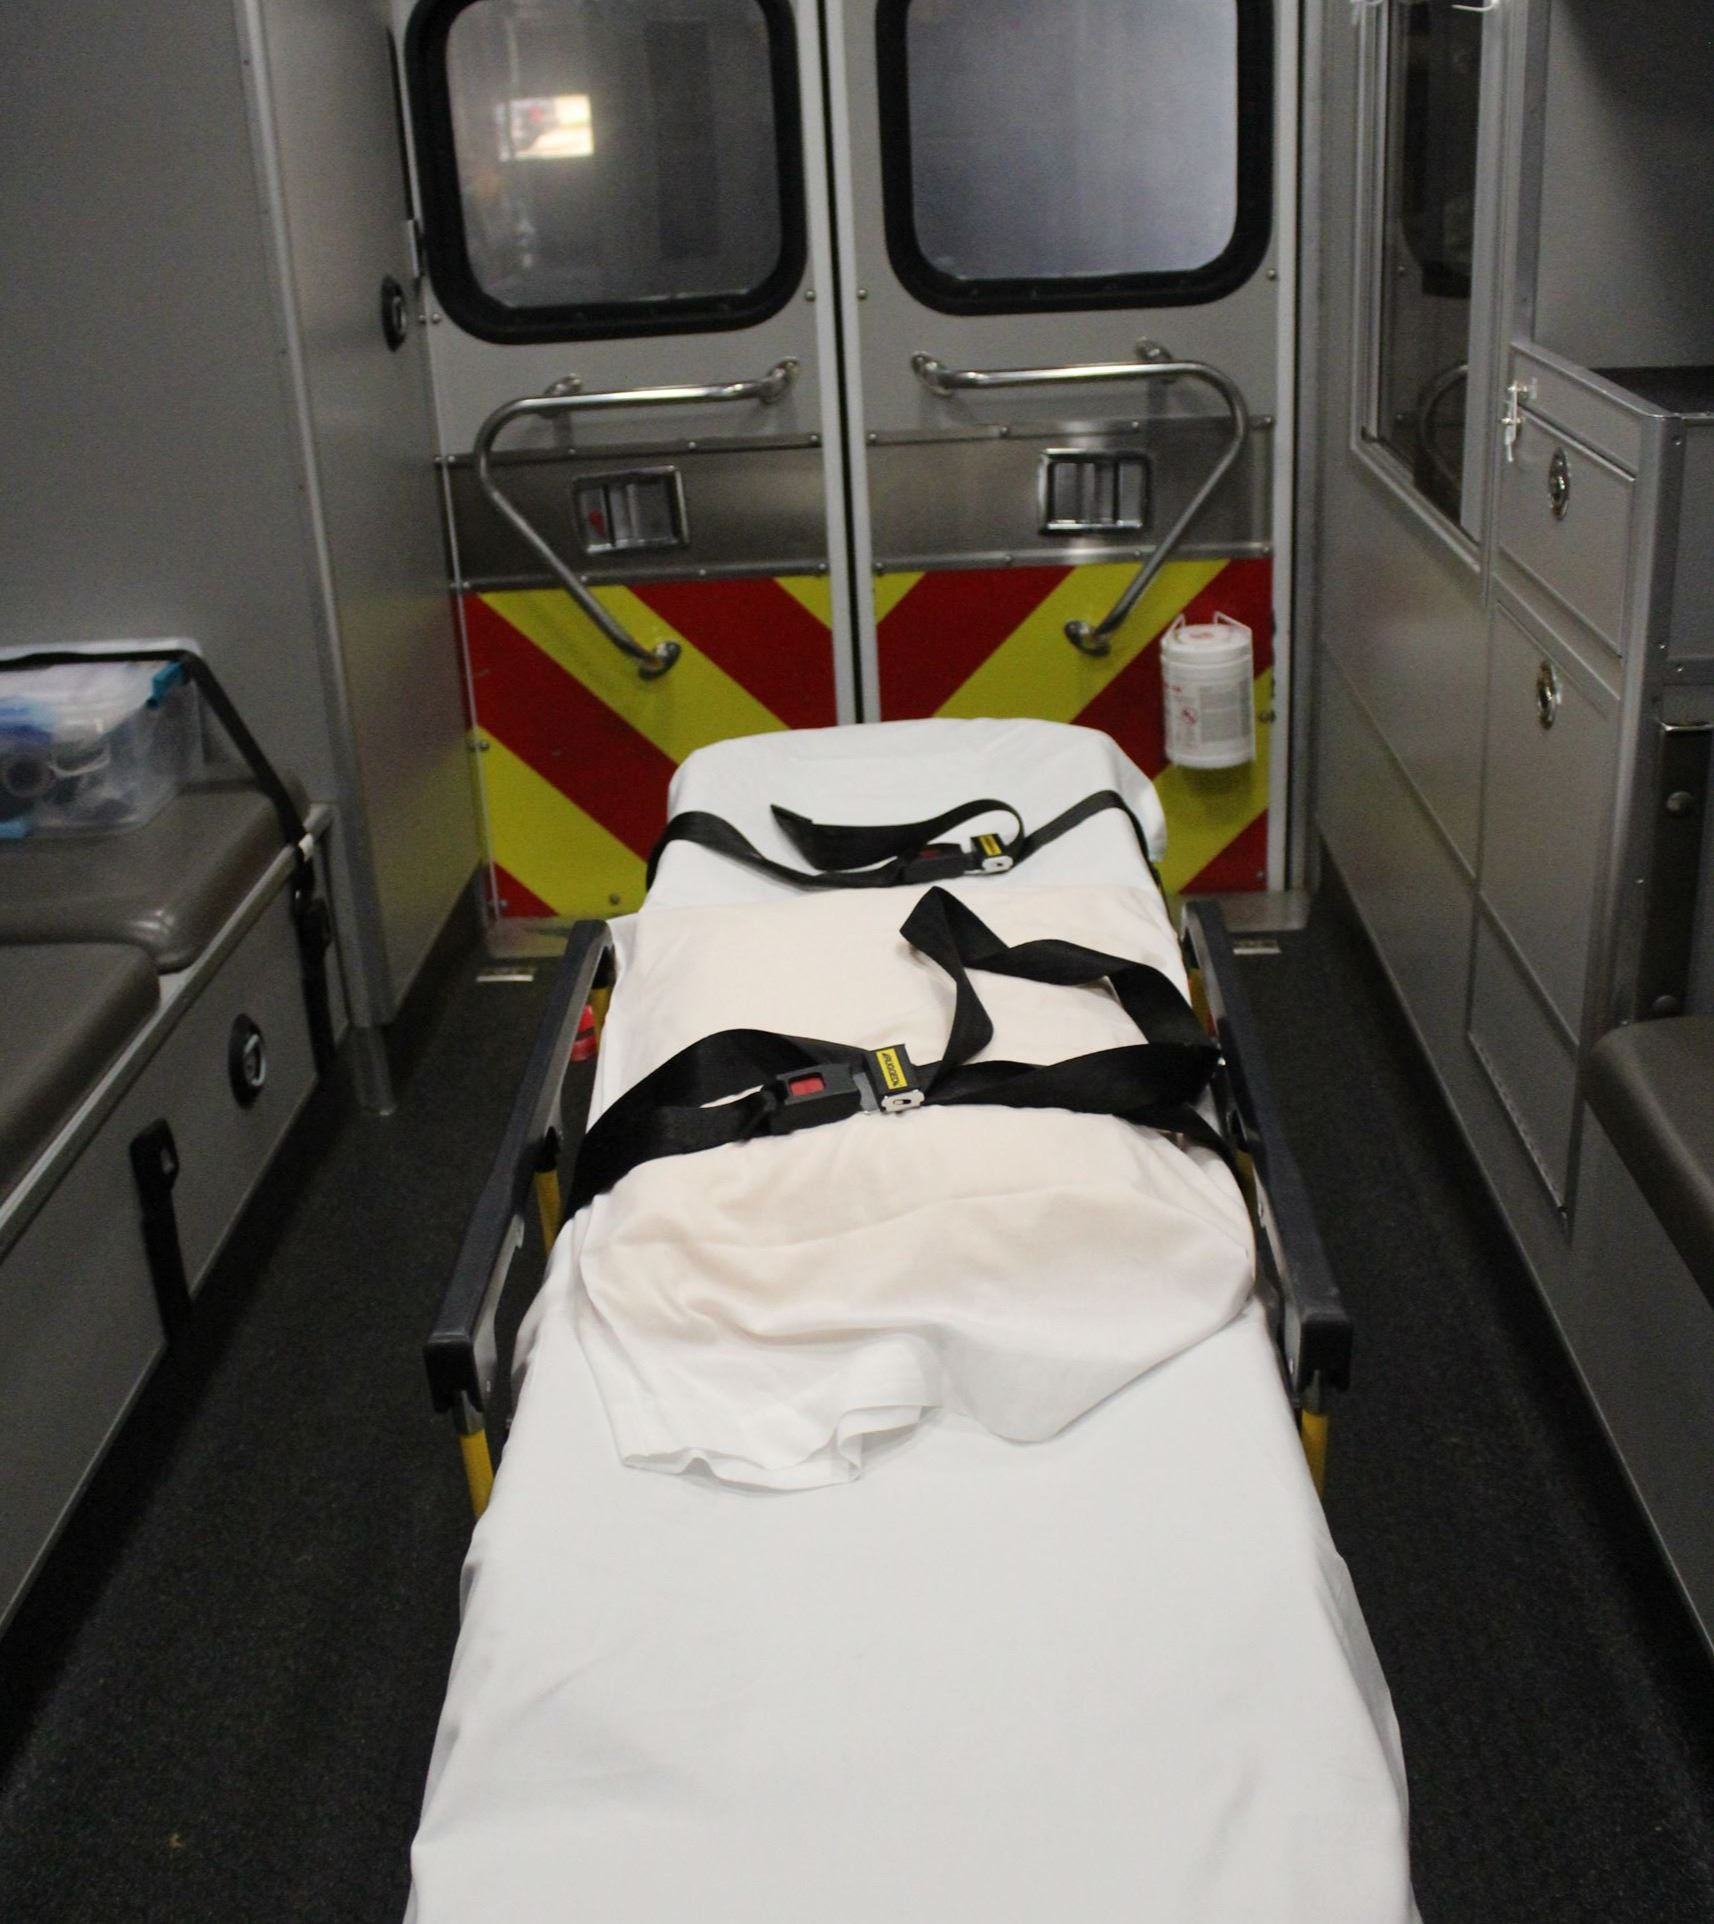 072320 Ambulance Type 1 interior (JPG)